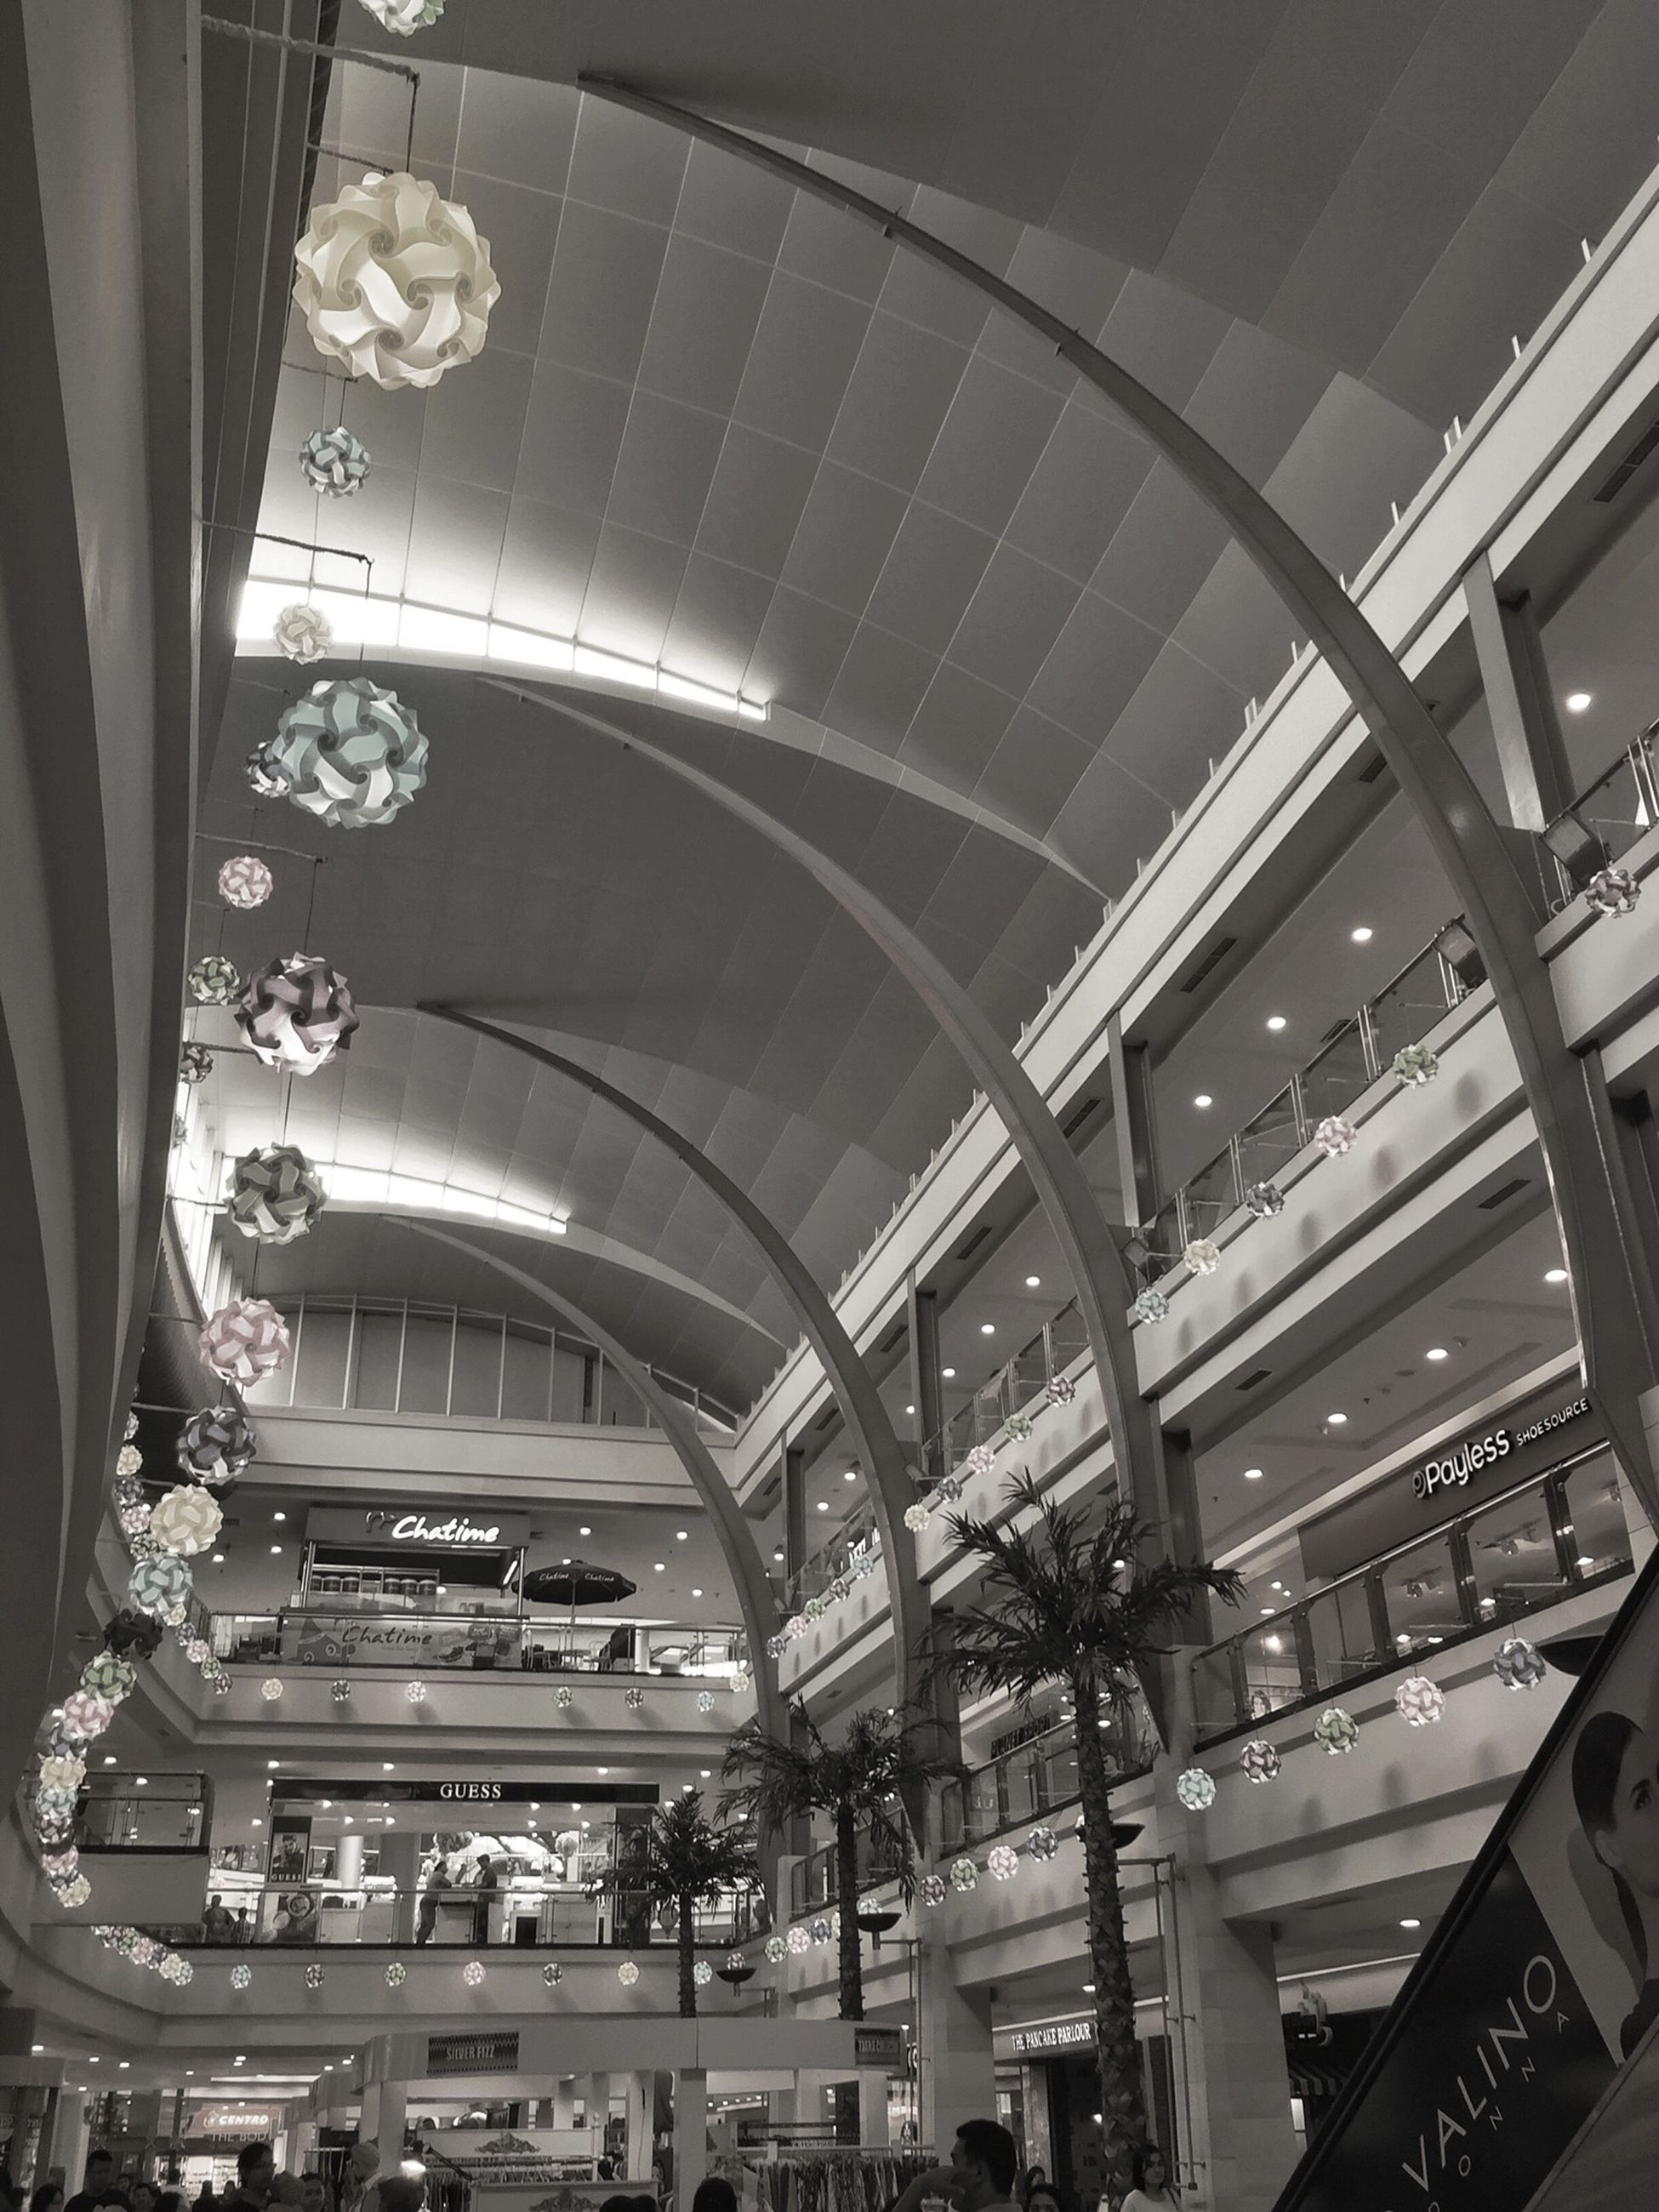 indoors, ceiling, architecture, built structure, illuminated, low angle view, shopping mall, incidental people, interior, lighting equipment, arch, modern, travel, transportation, large group of people, in a row, architectural column, railroad station, architectural feature, high angle view